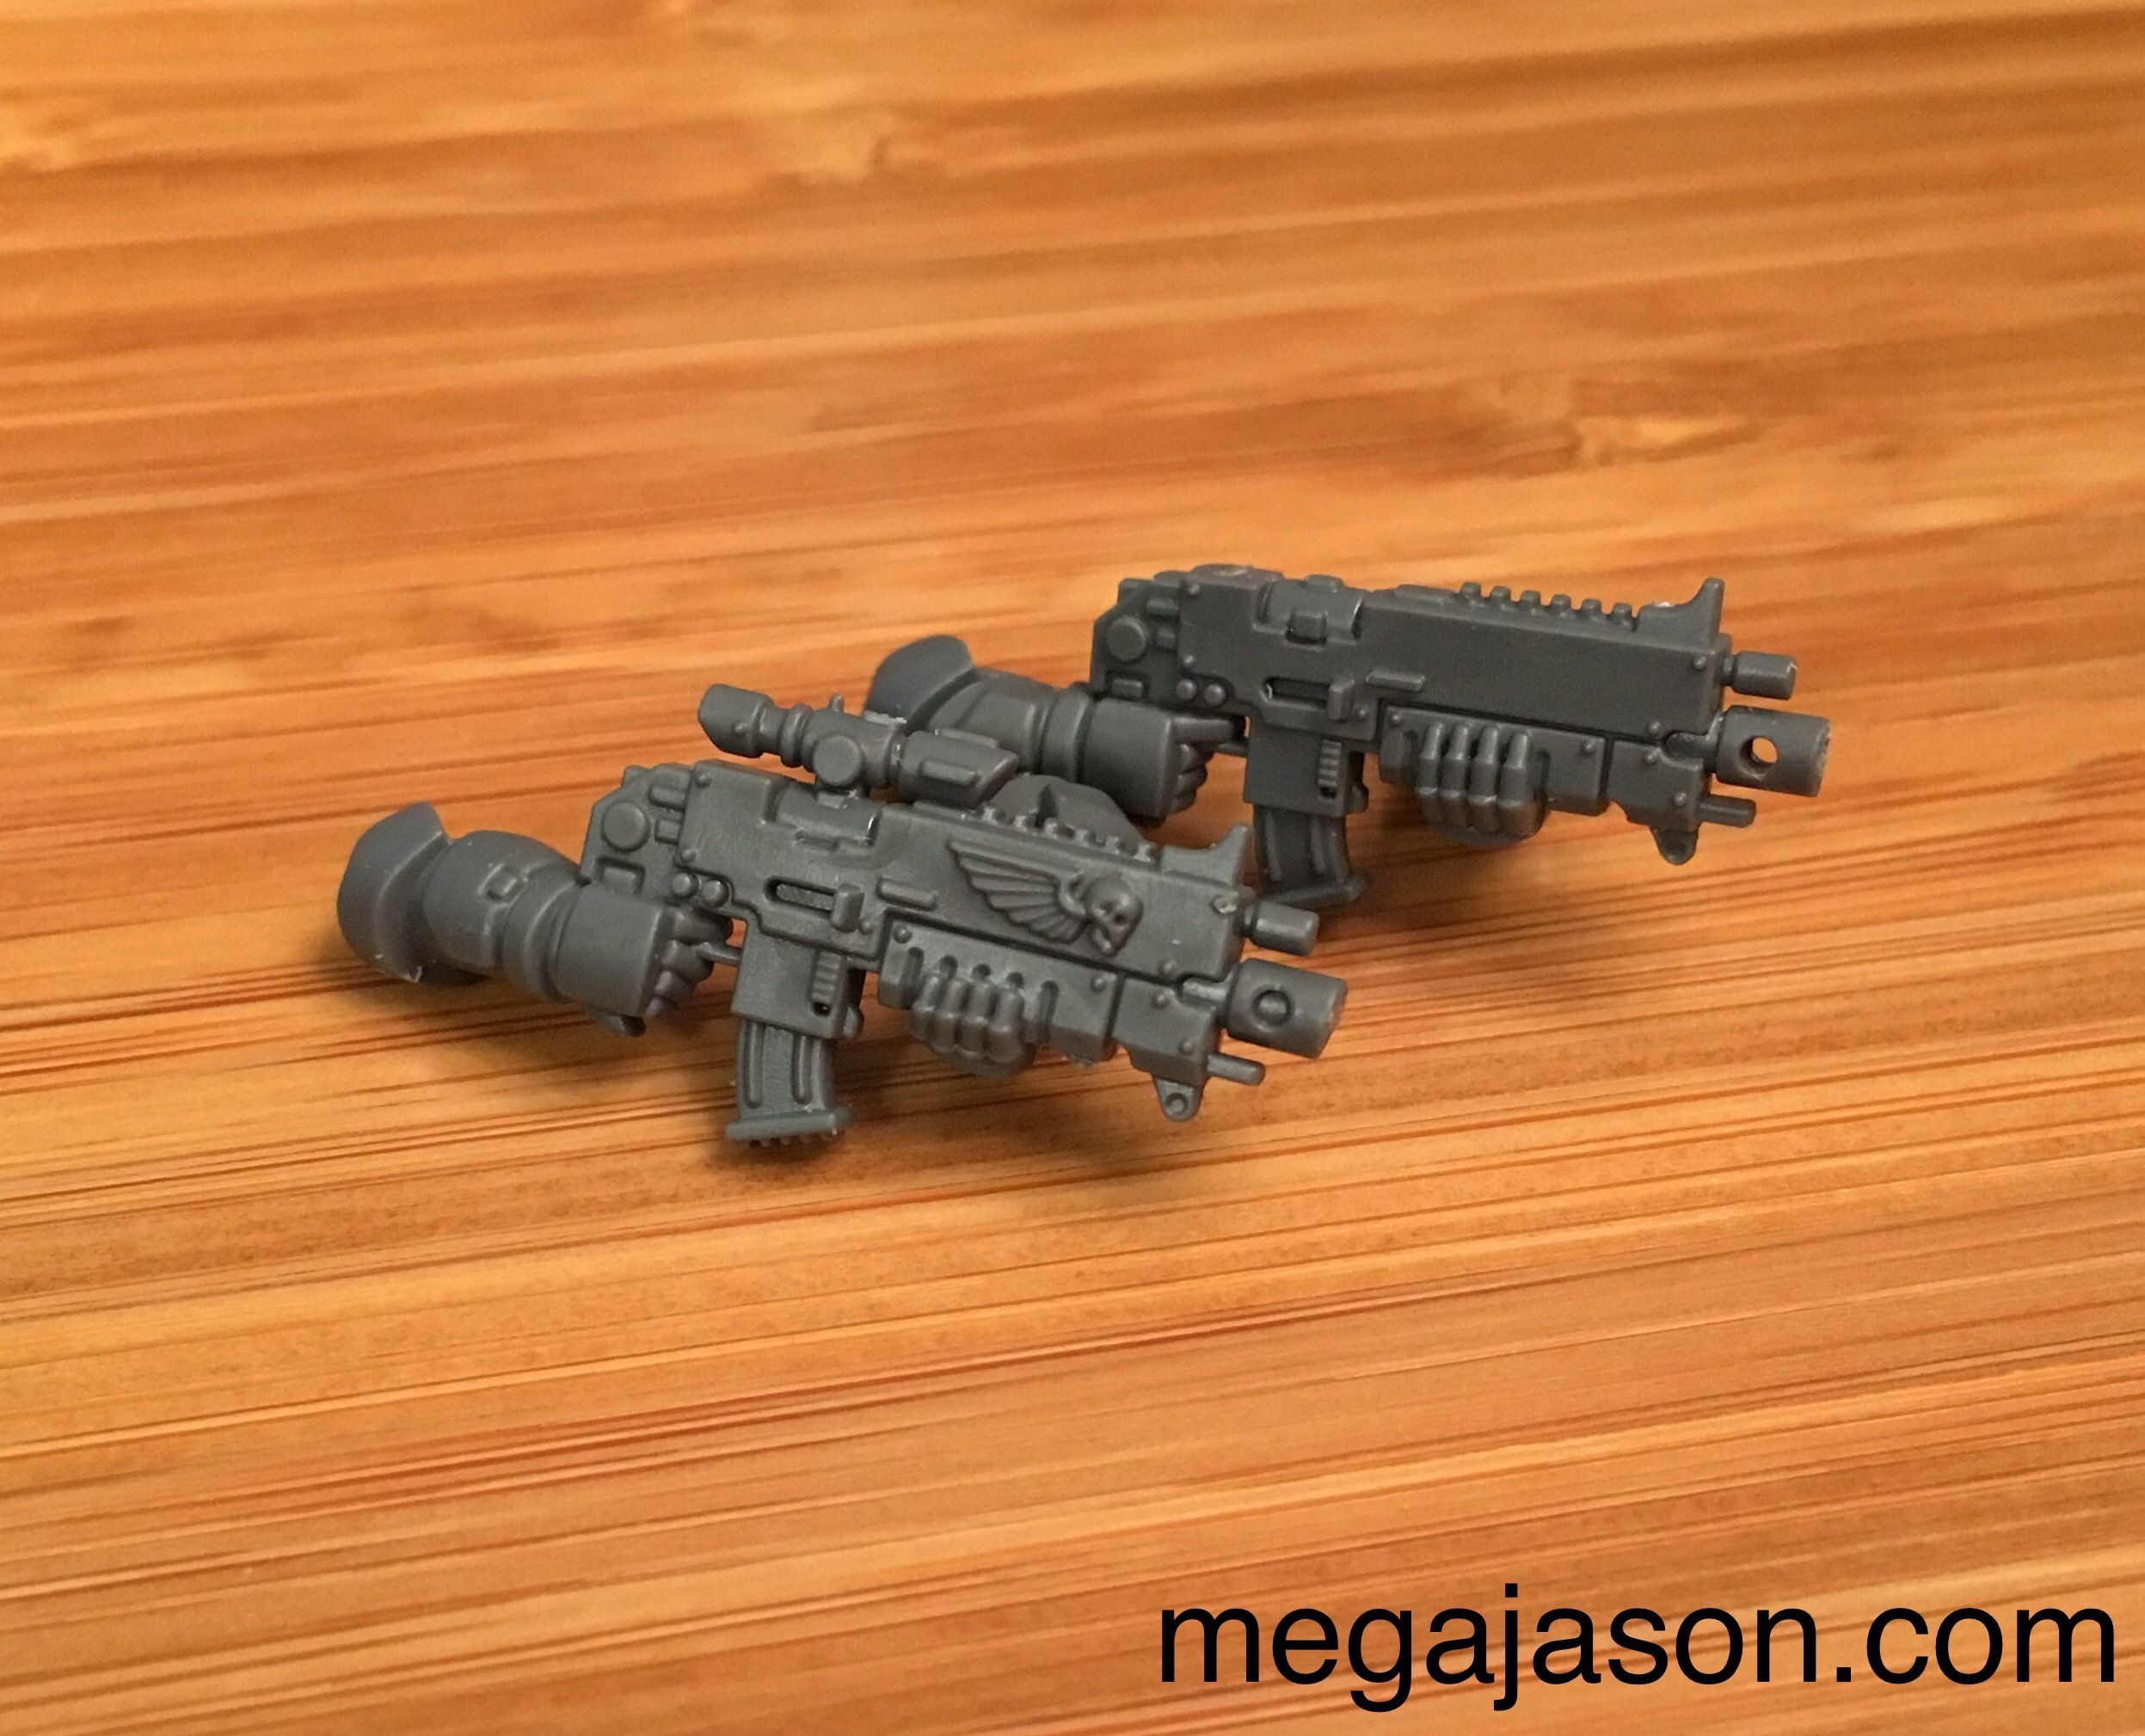 Warhammer Pin Vice with Multiple Drill Bits